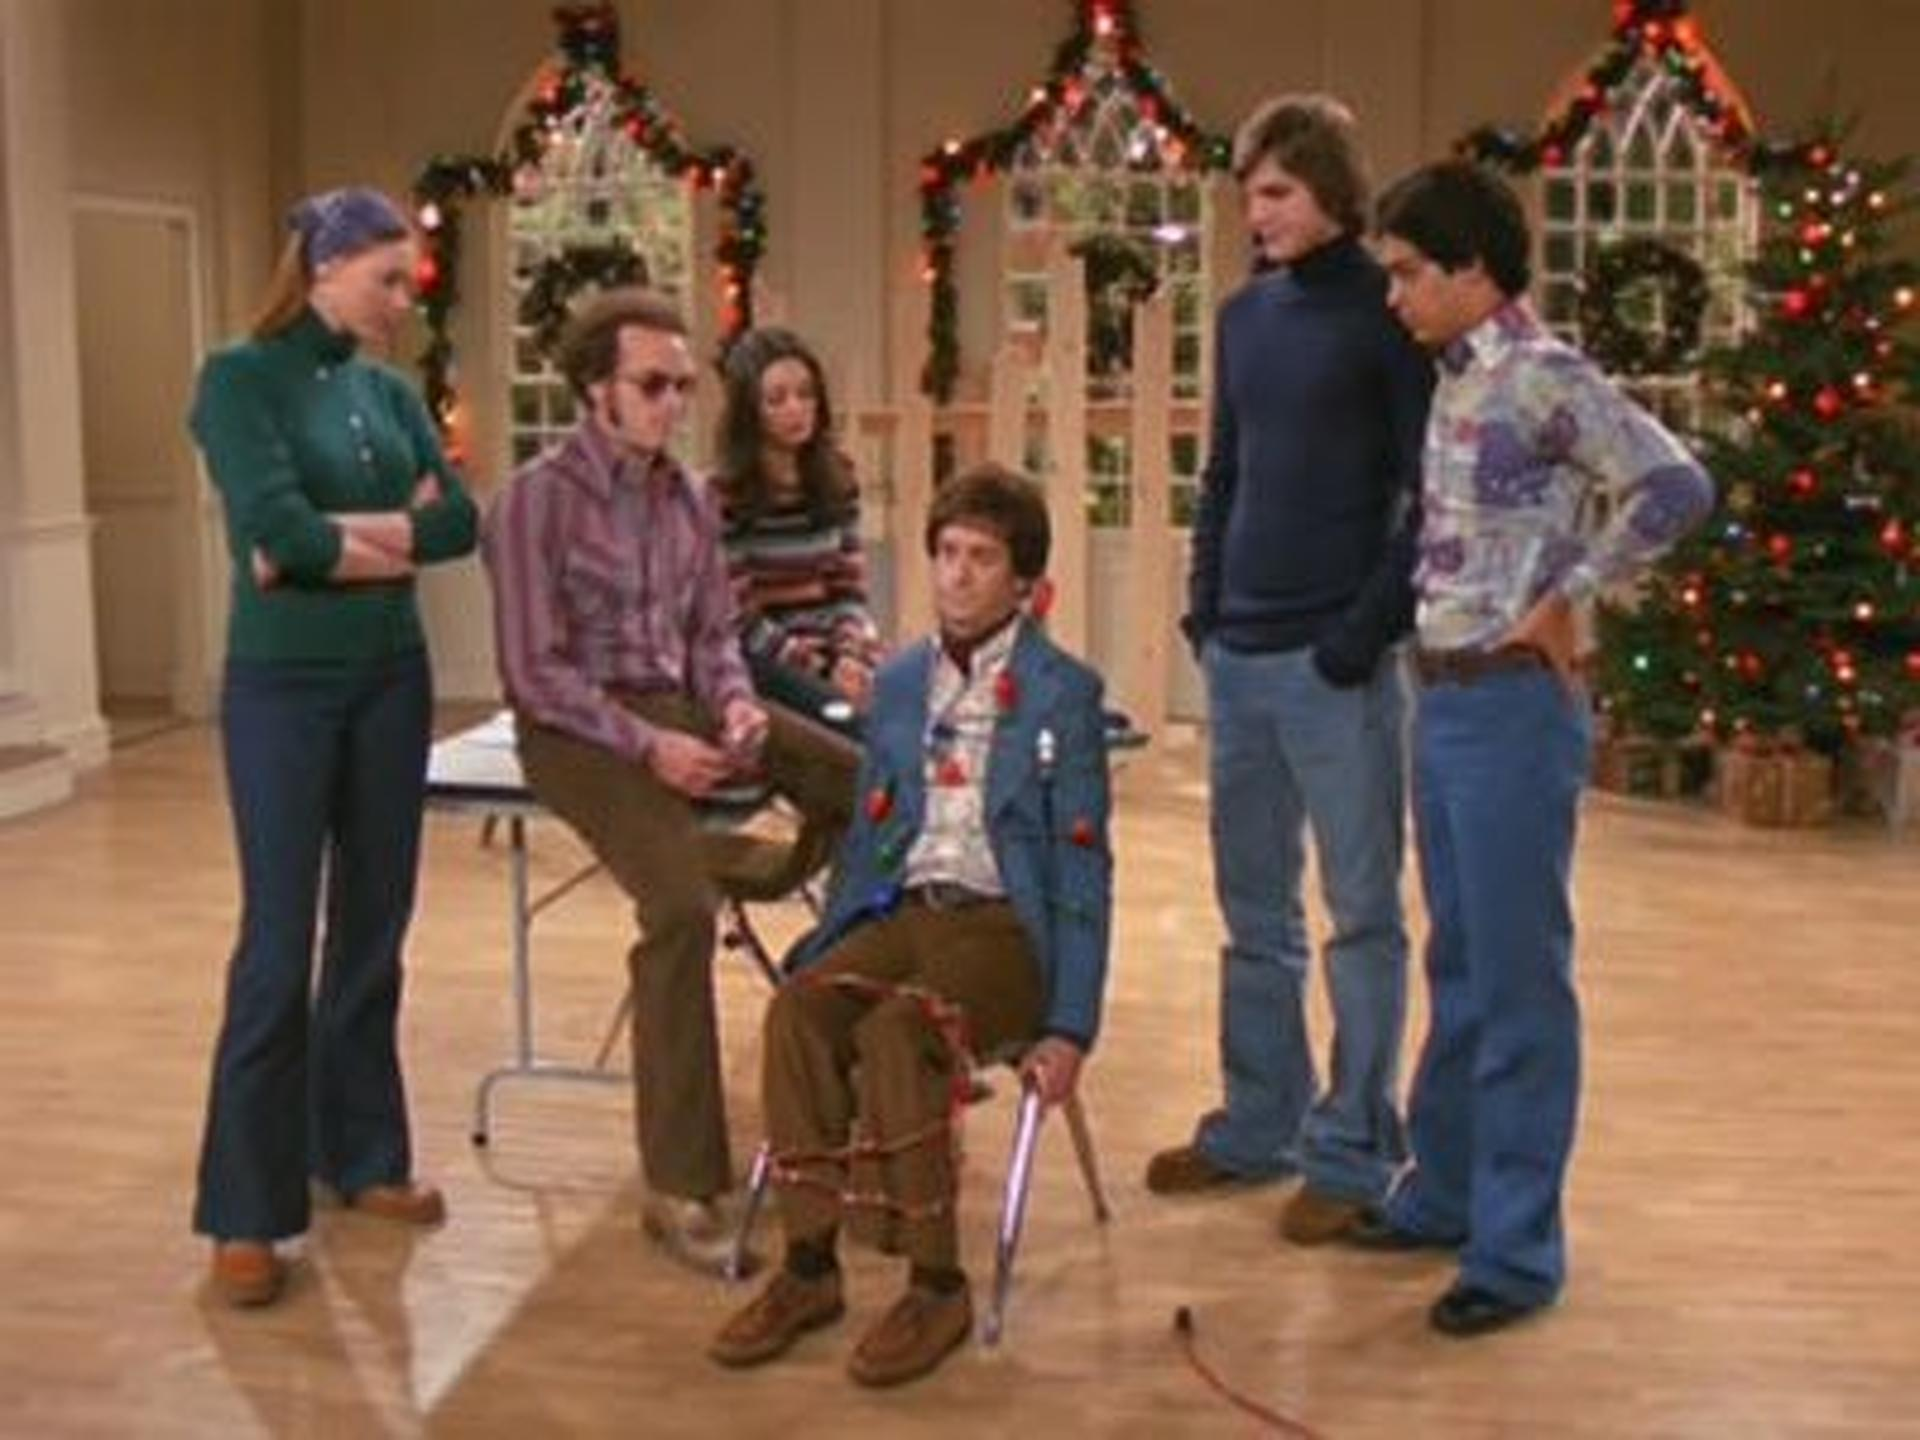 an eric forman christmas summary that 70s show season 4 episode 12 episode guide - That 70s Show Christmas Episodes